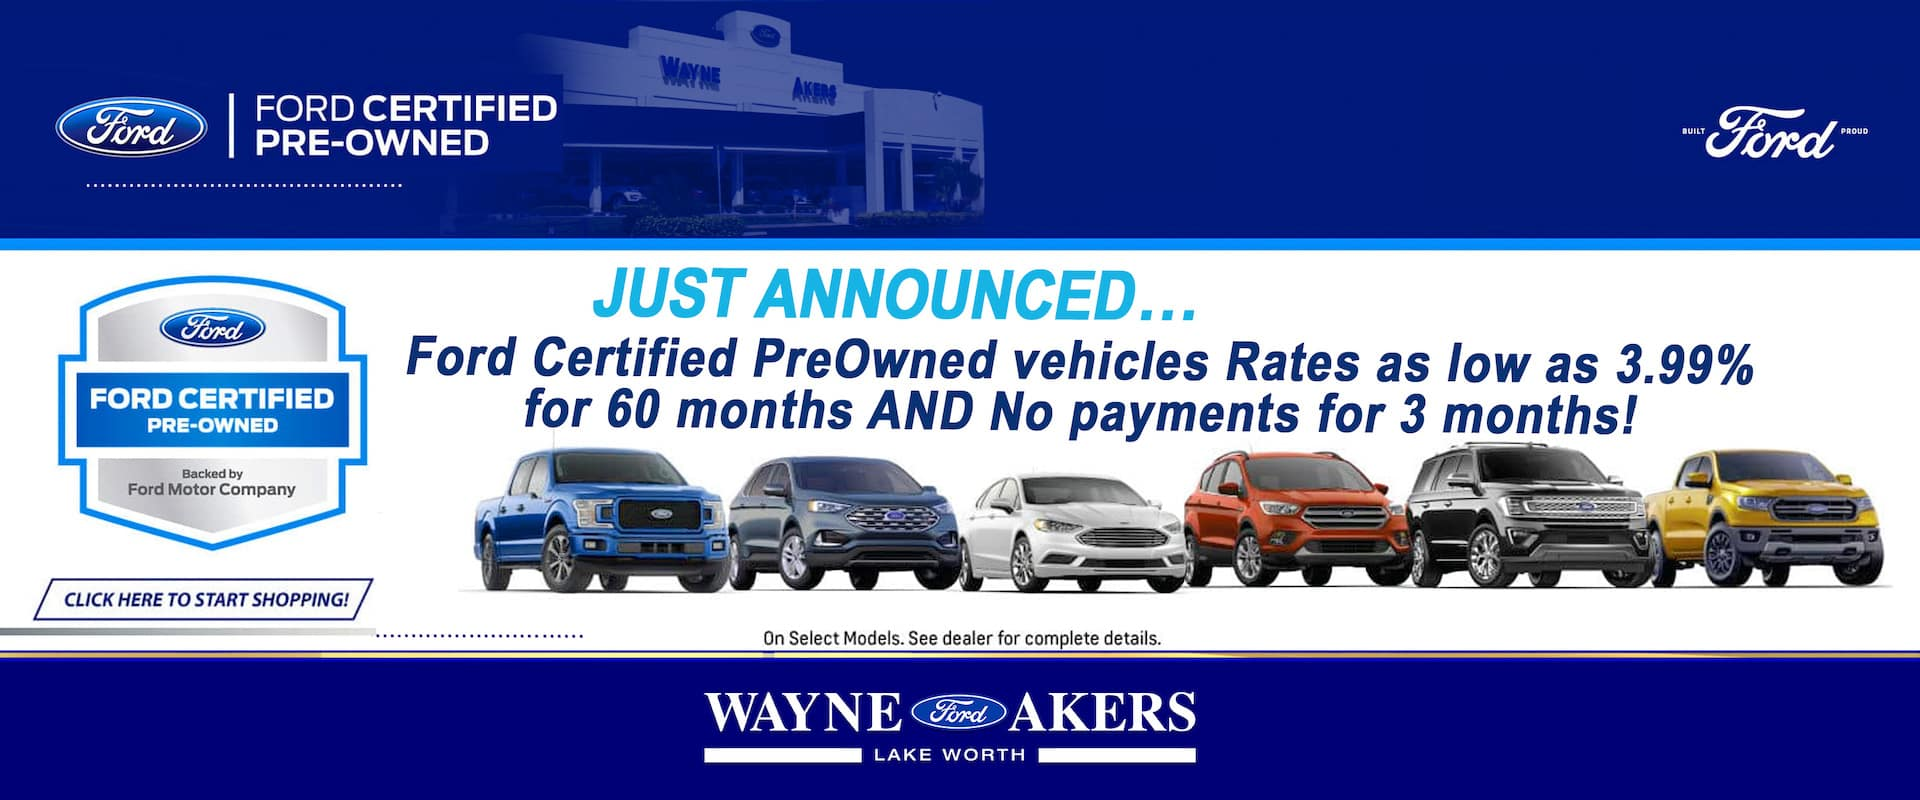 JUST ANNOUNCED FORD CERTIFIED PREOWNED VEHICLES RATES AS LOW AS 3.99% FOR 60 MONTHS AND NO PAYMENTS FOR 3 MONTHS!